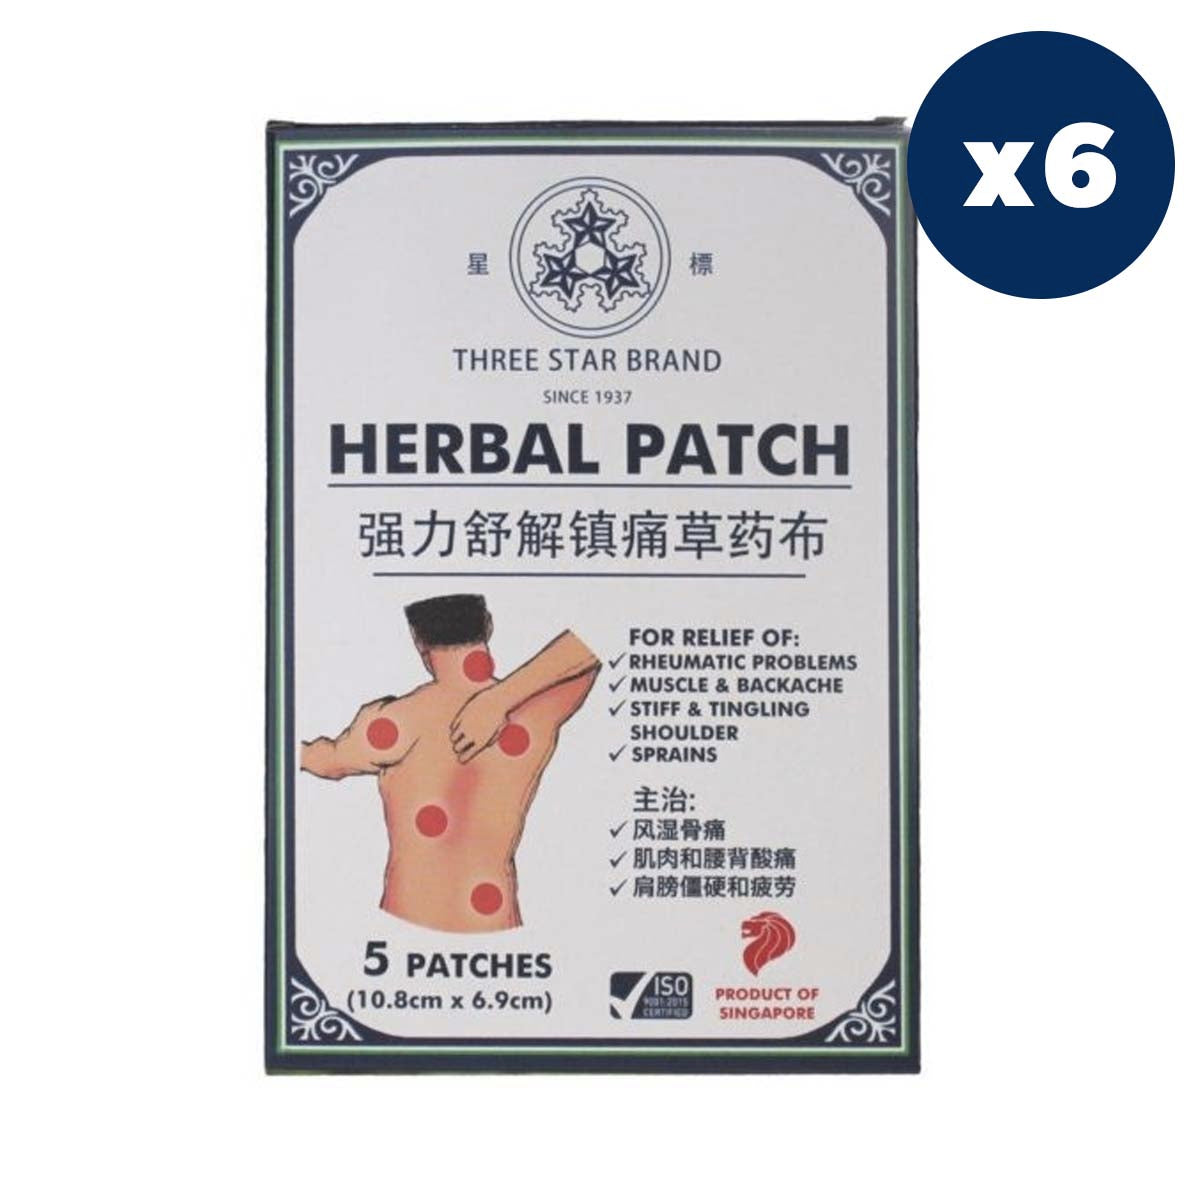 TSB Herbal Medicated Patch (5 patches) x 6